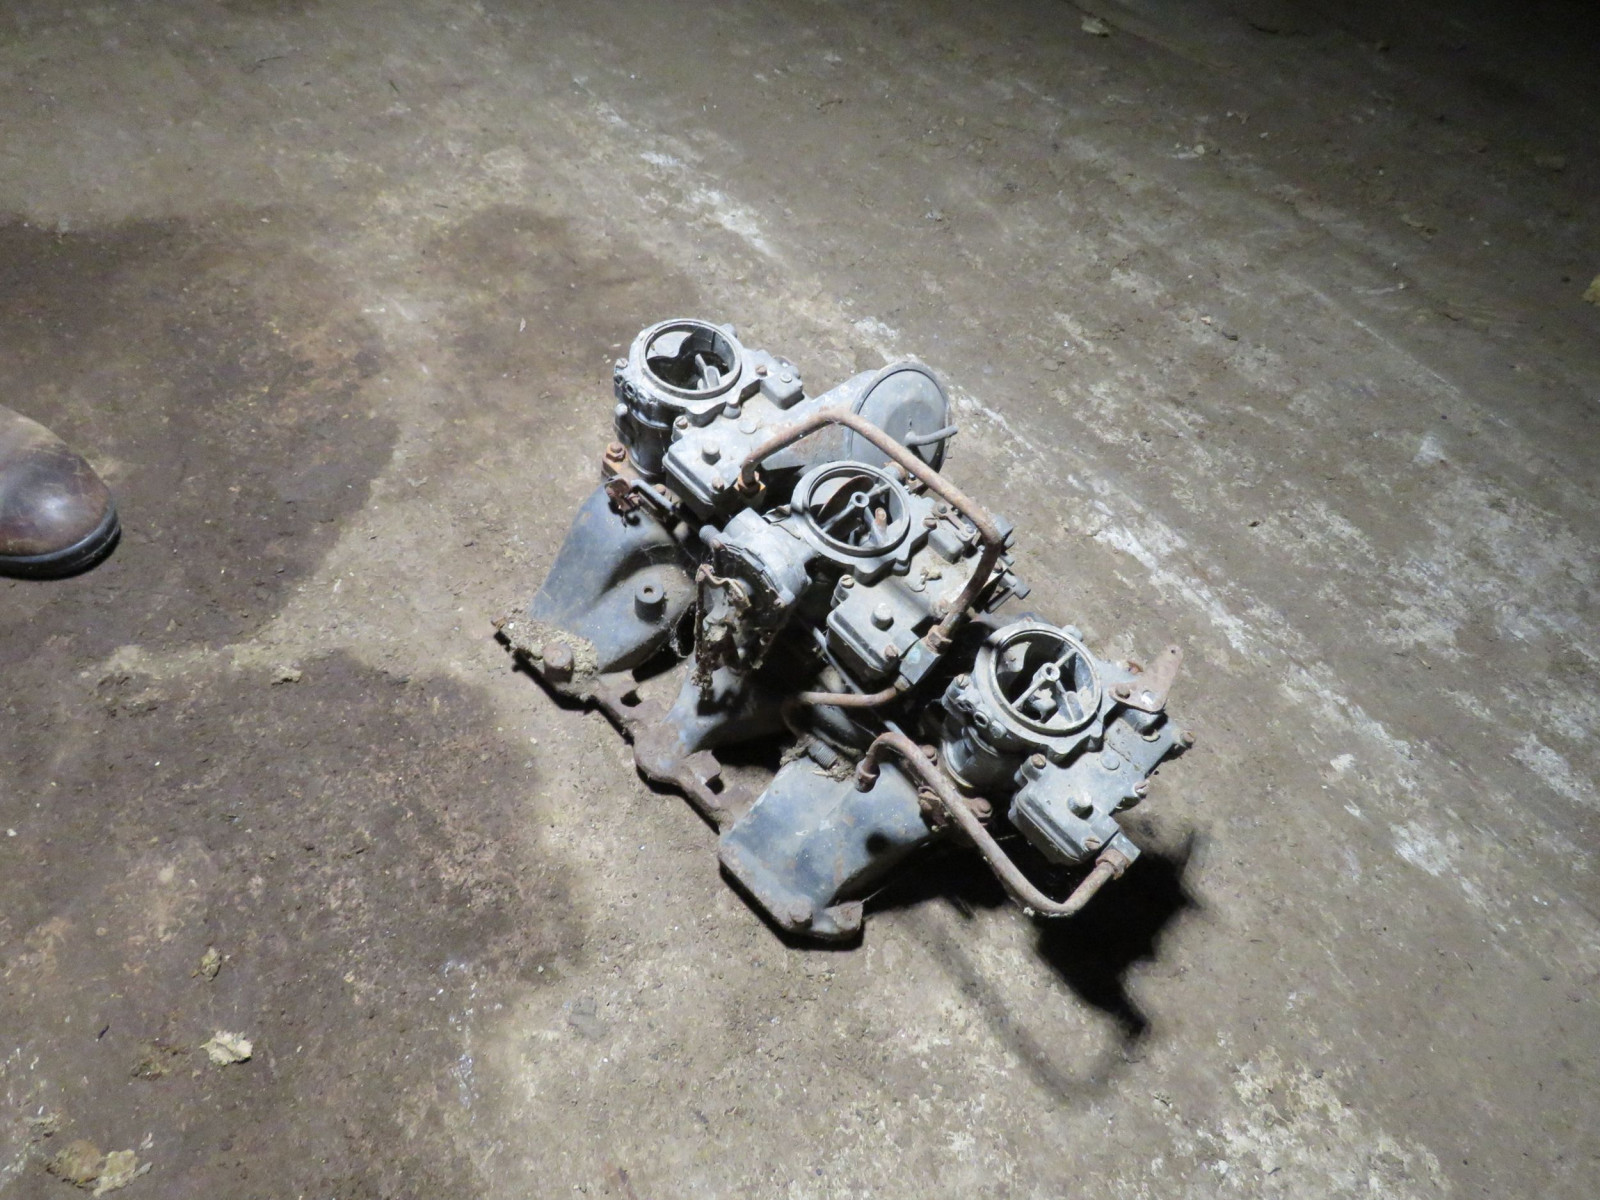 Cadillac Tri-power with no Air cleaner - Image 1